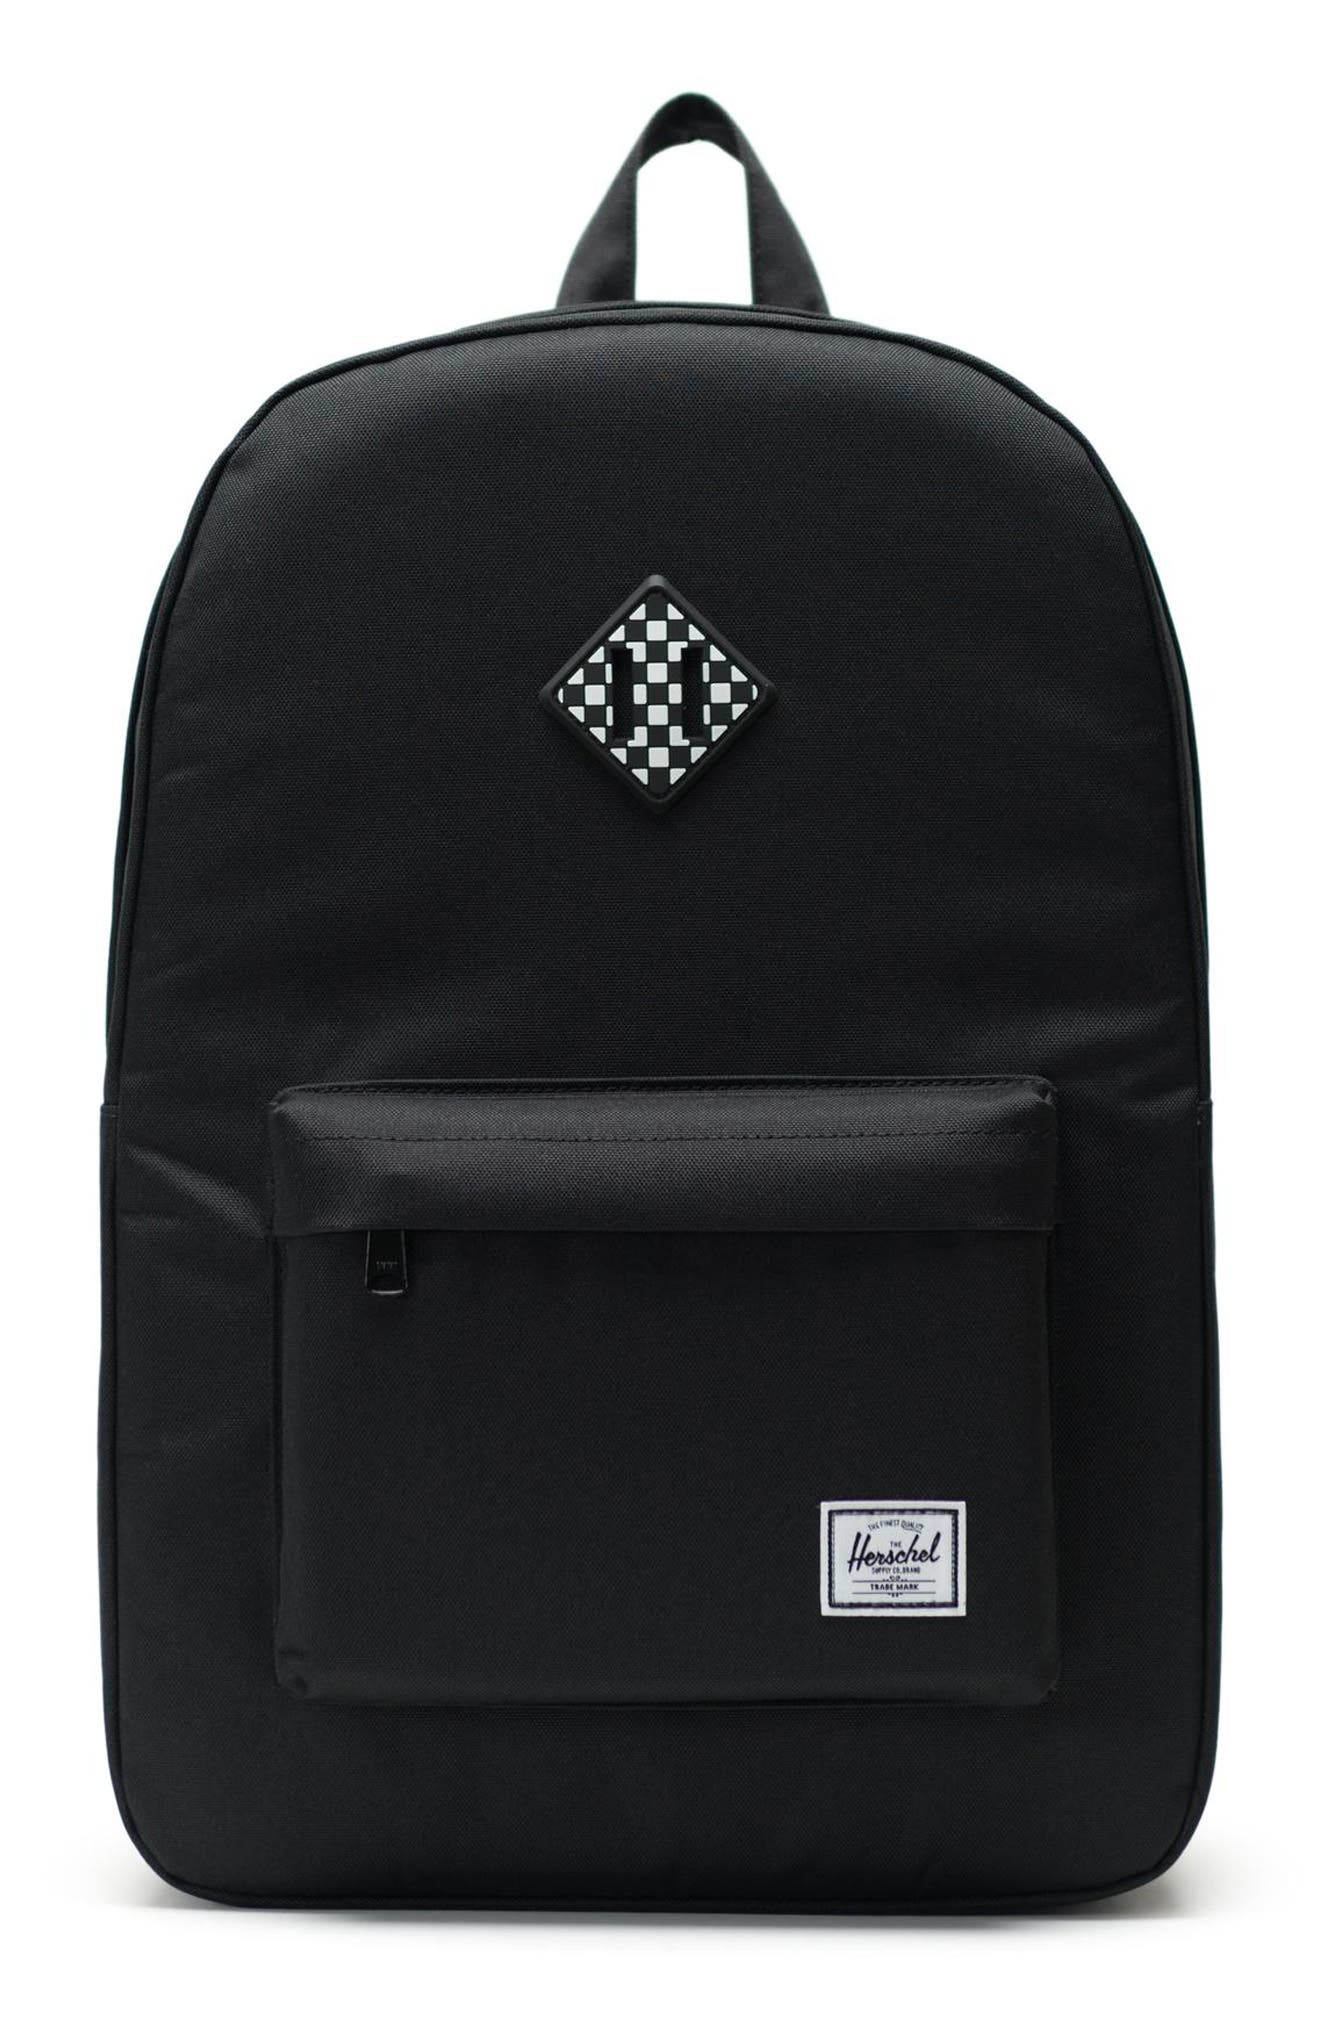 HERSCHEL SUPPLY CO. Heritage Print Backpack, Main, color, 001